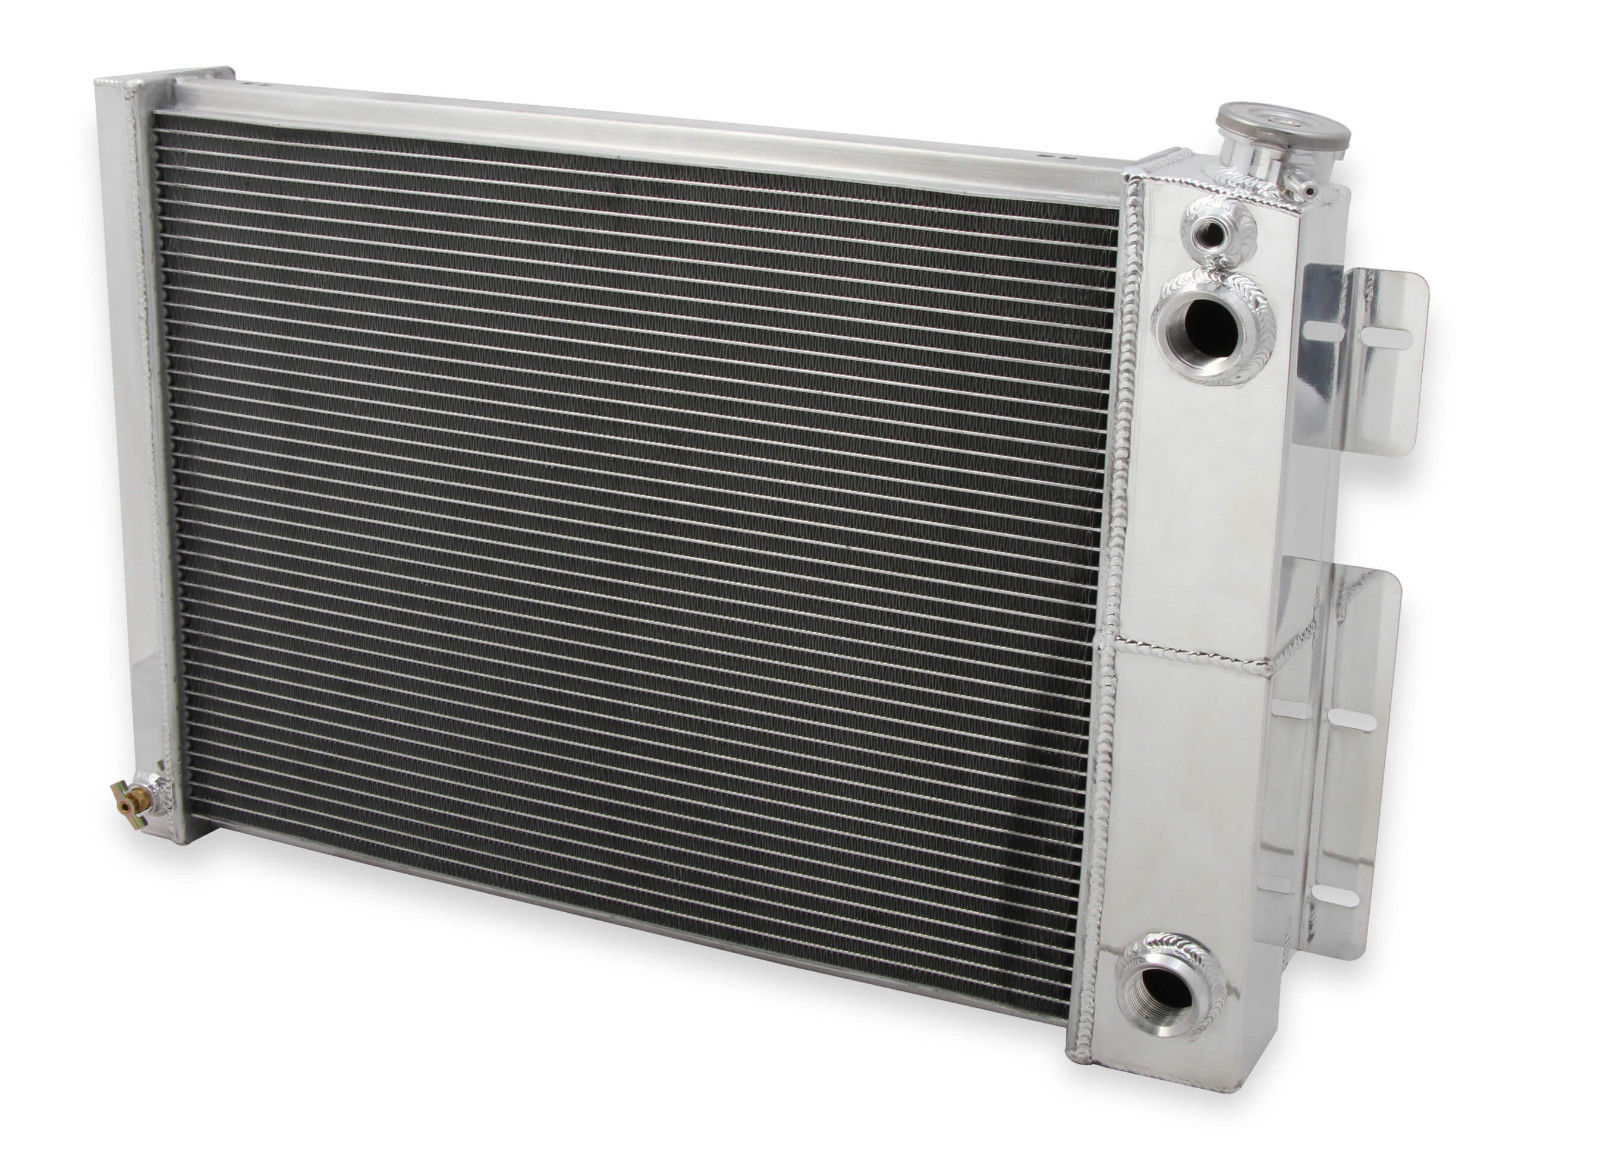 Frostbite GM LS Swap Aluminum Radiator 67-69 Camaro 62-67 GM A X Body FB300